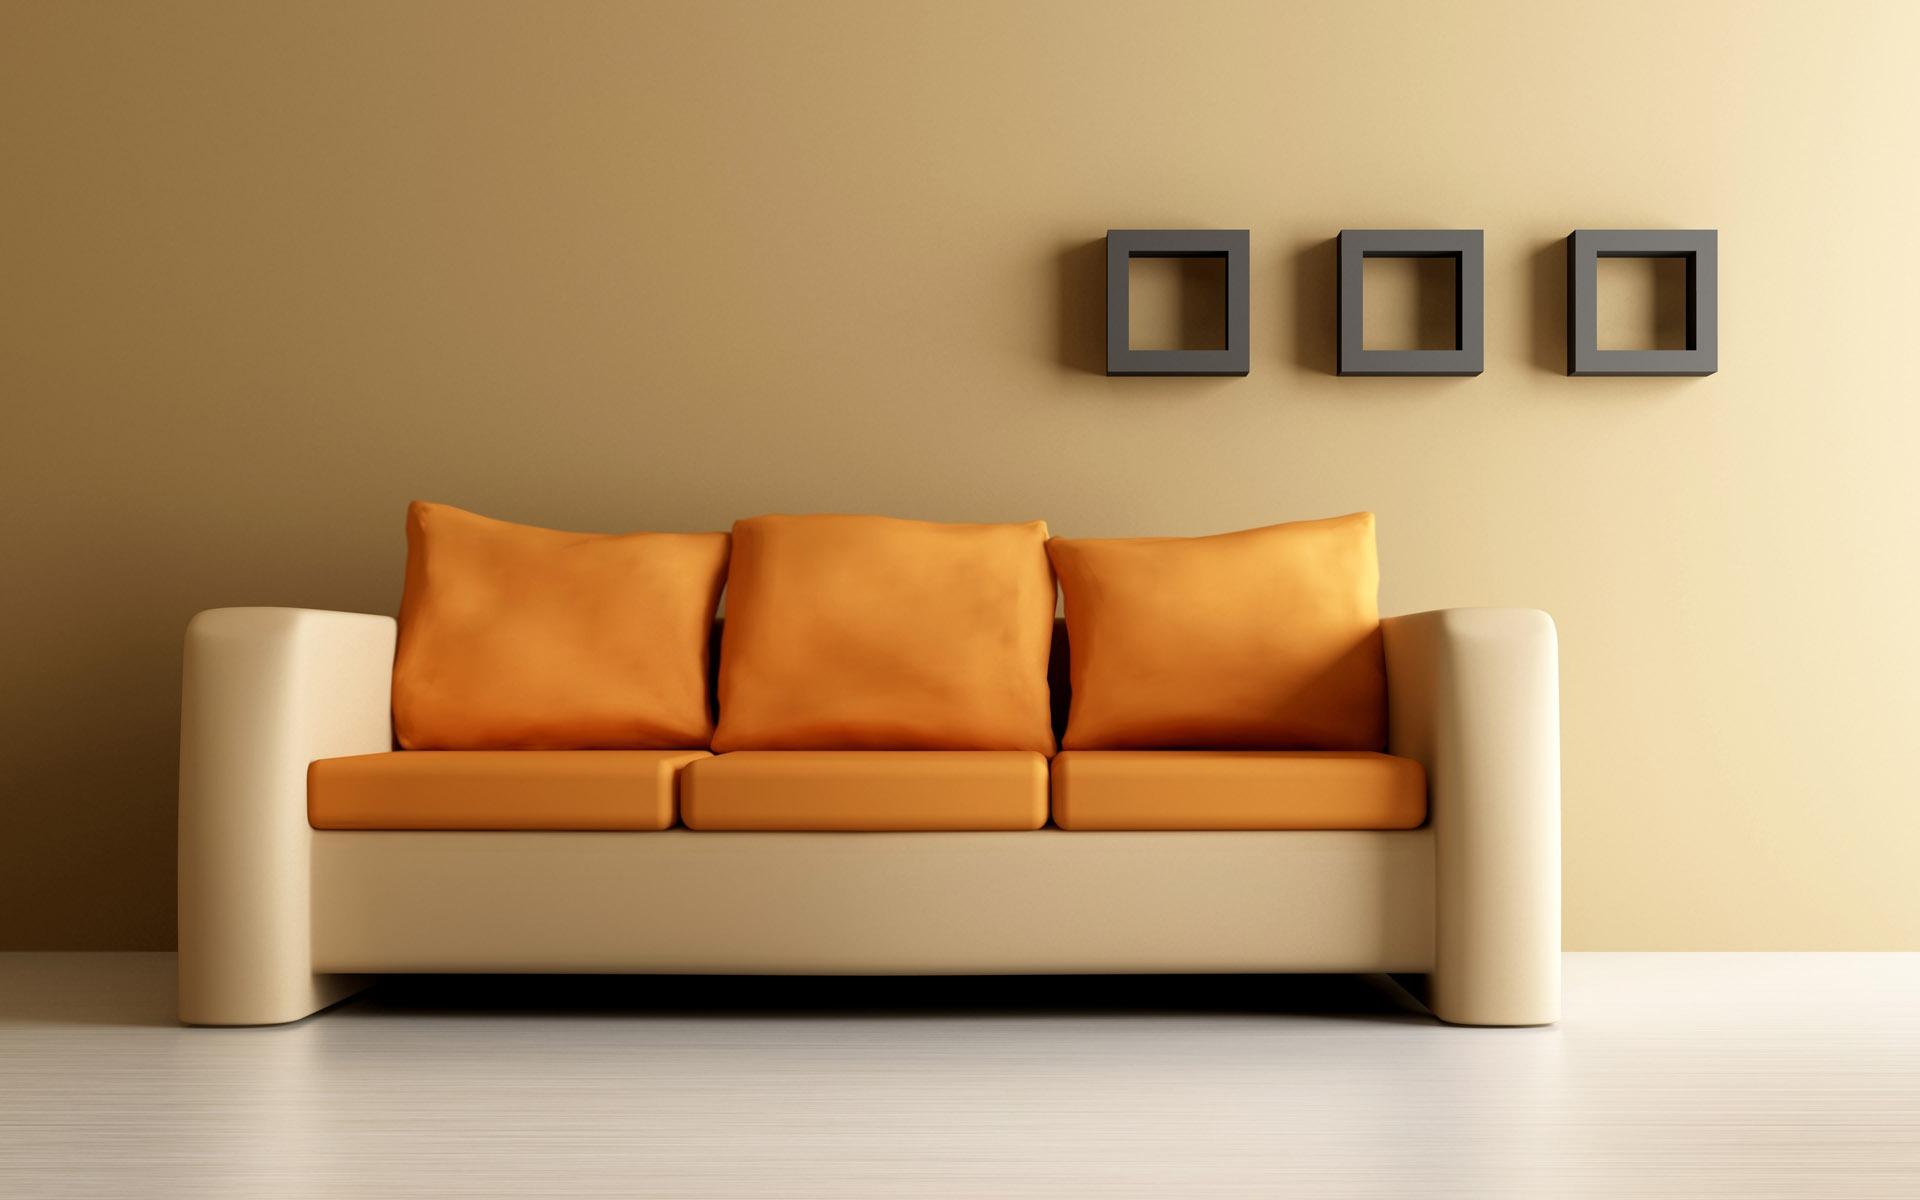 orange couch wallpaper interior design other - Interior Design Wall Paper